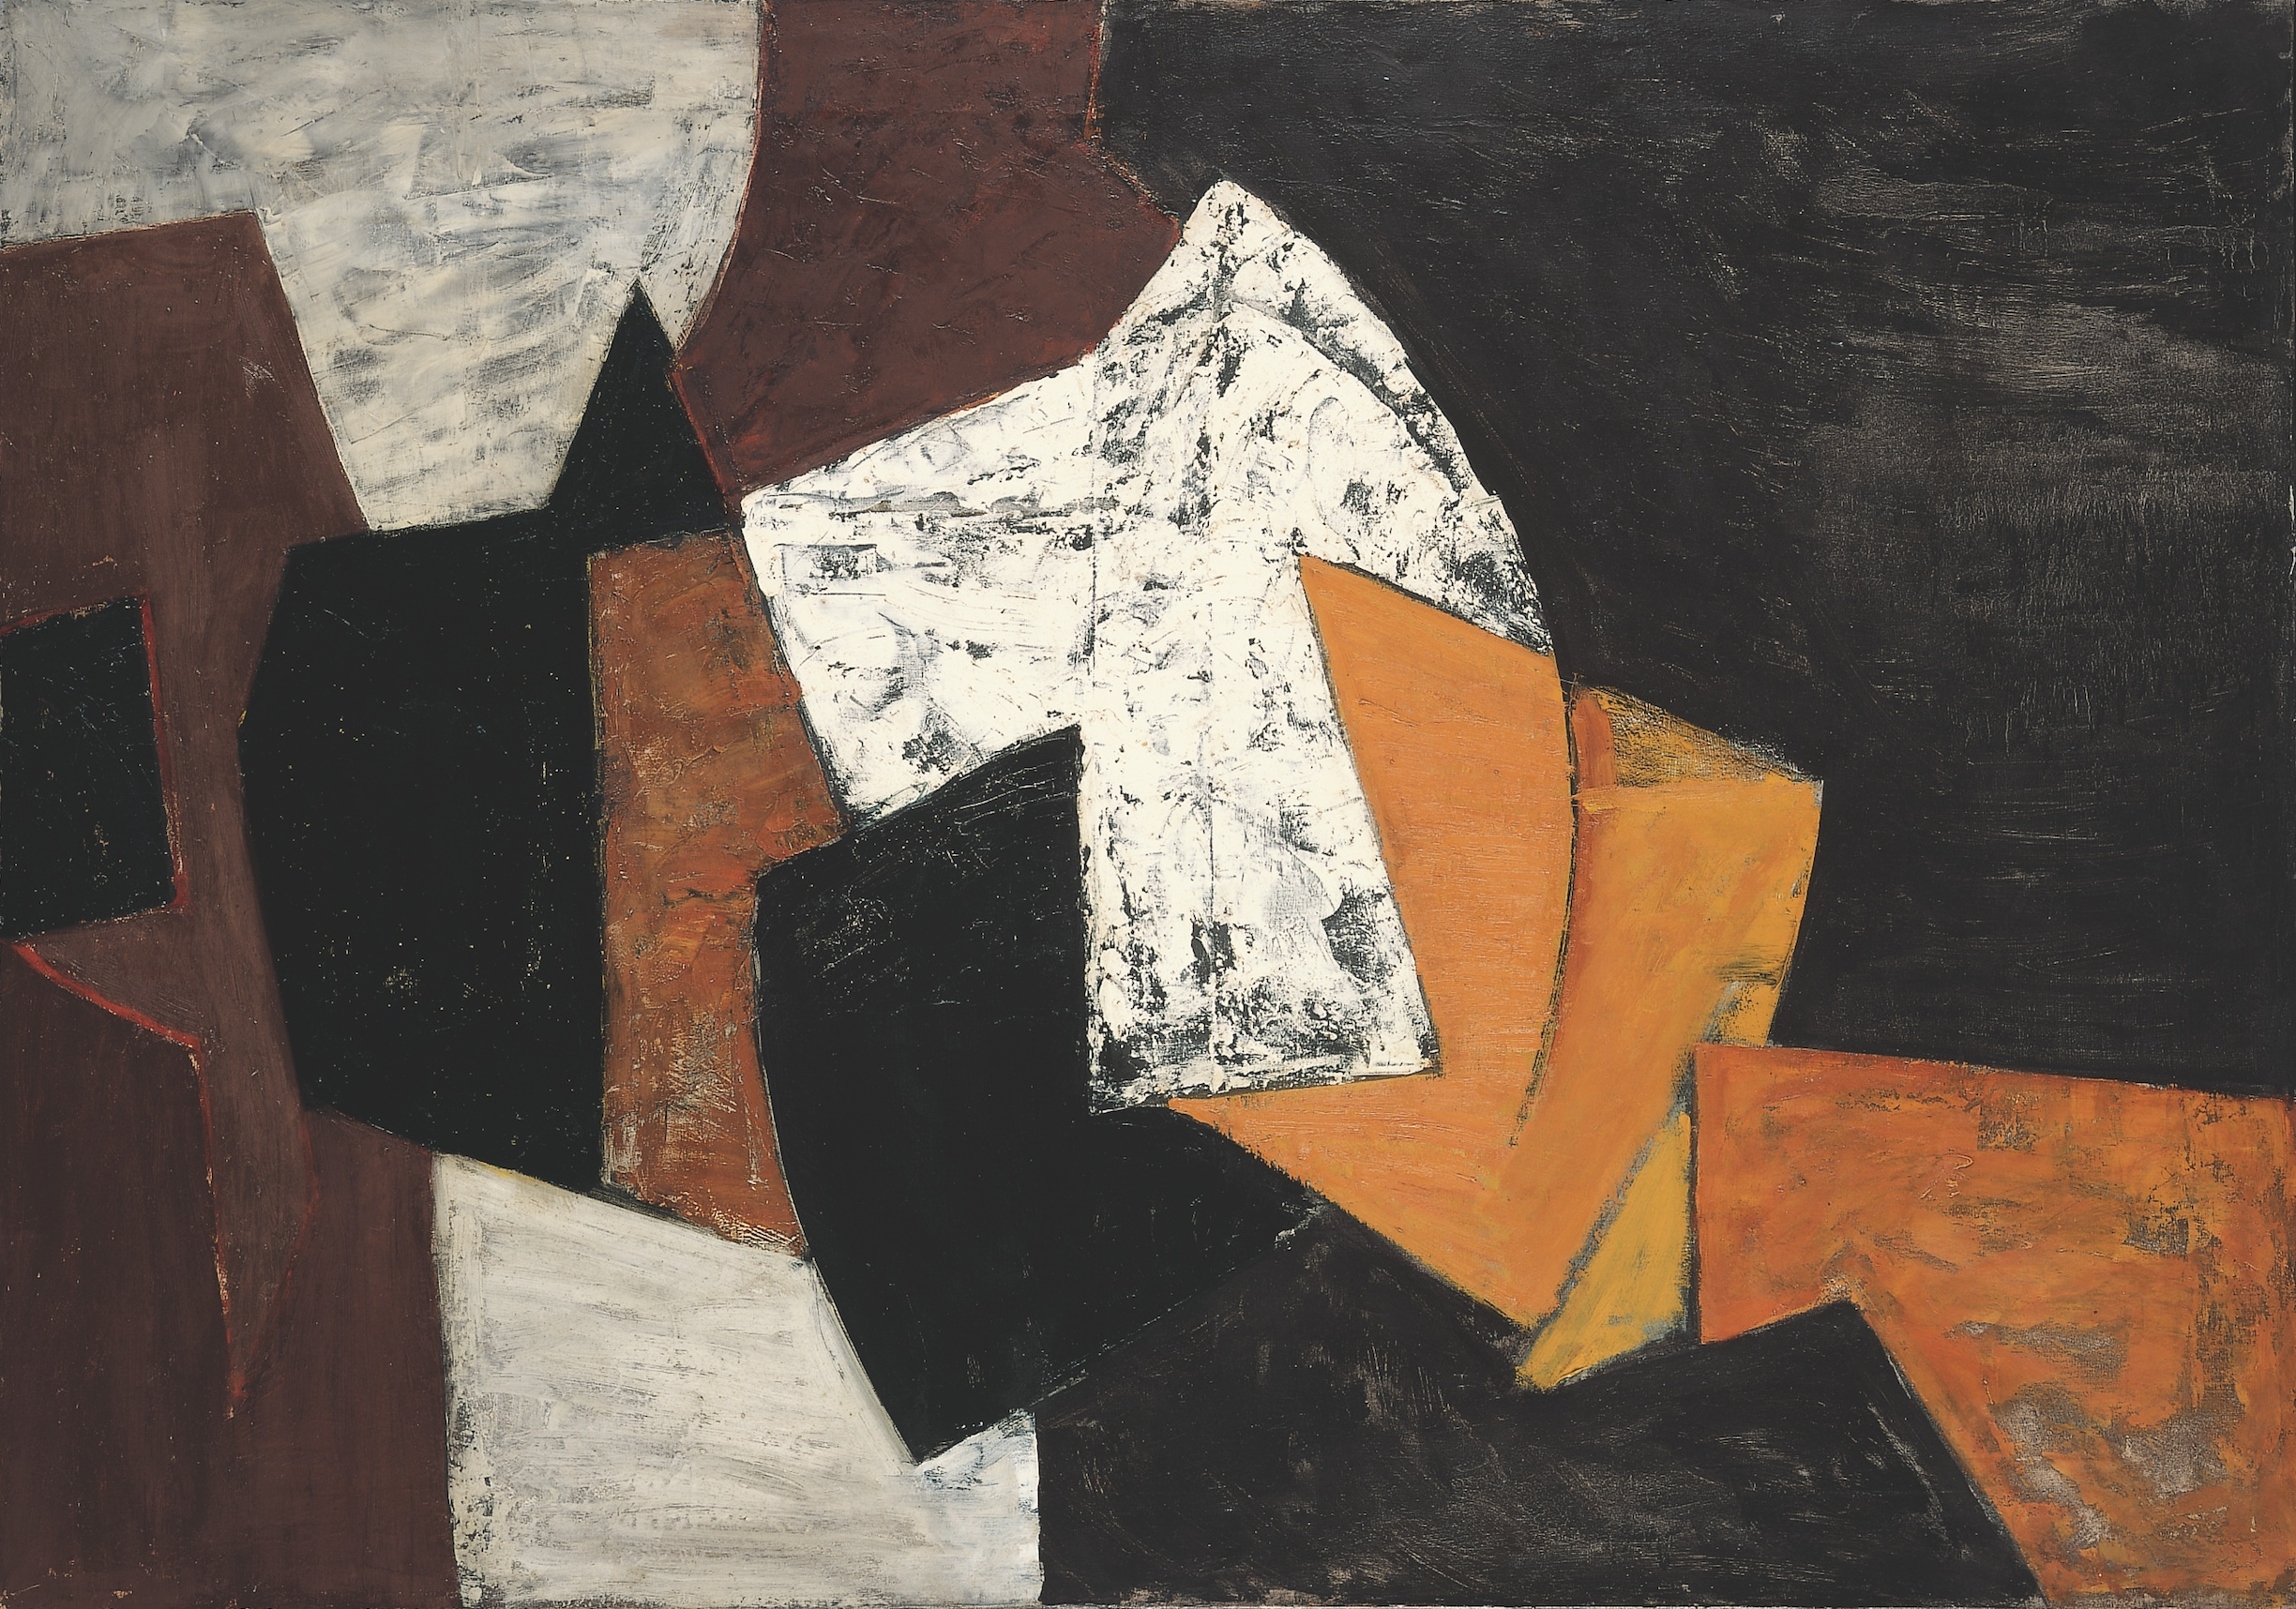 Adrian Heath 1920 - 1992  Composition: Black, Brown, Orange and White, 1955  Oil on canvas 32 x 46 in / 81.3 x 116.5 cm